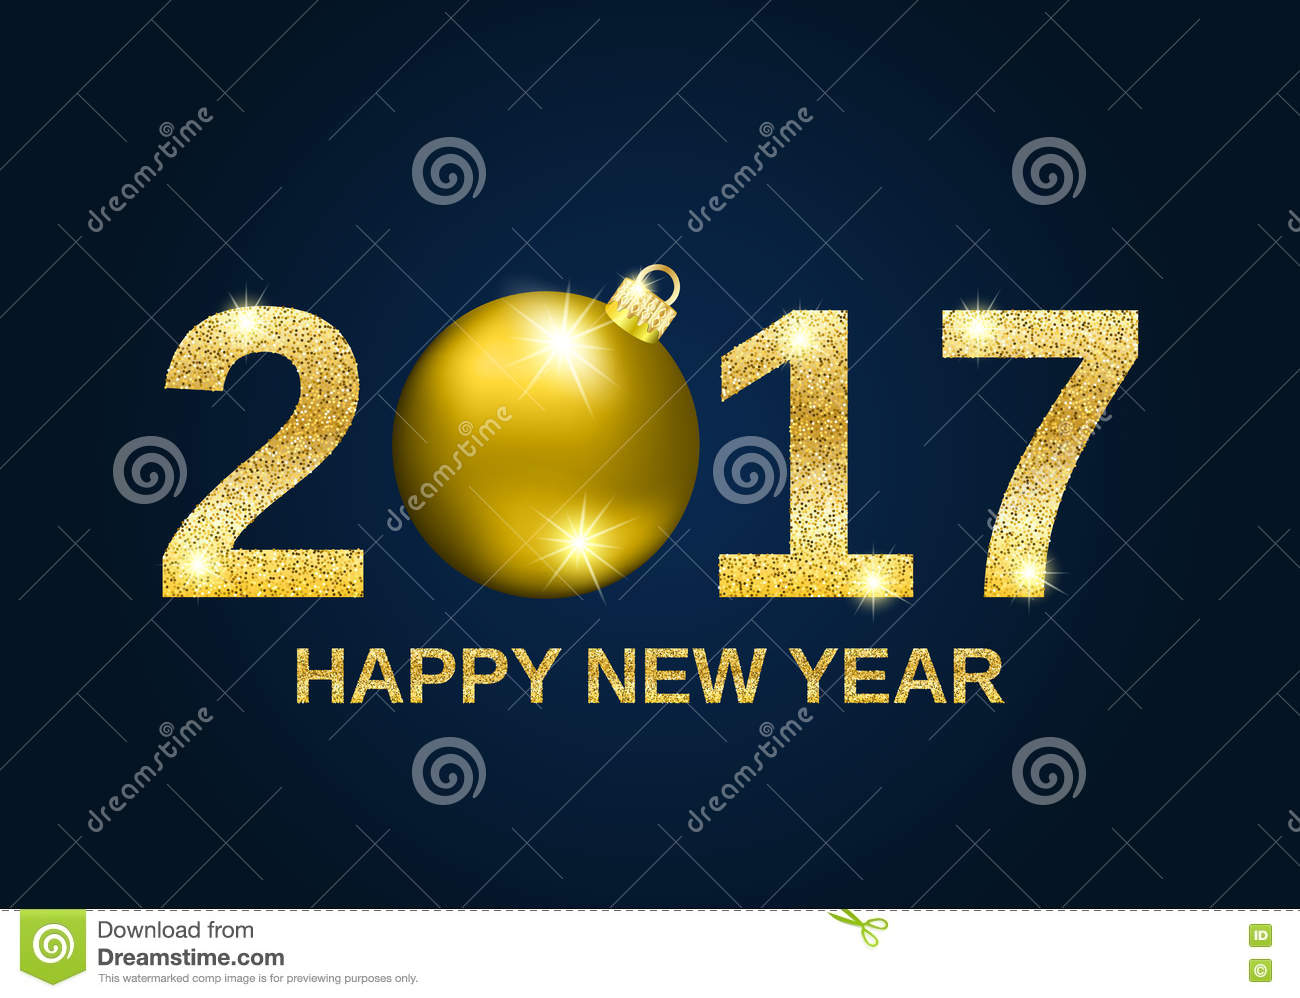 gold glitter happy new year 2017 background